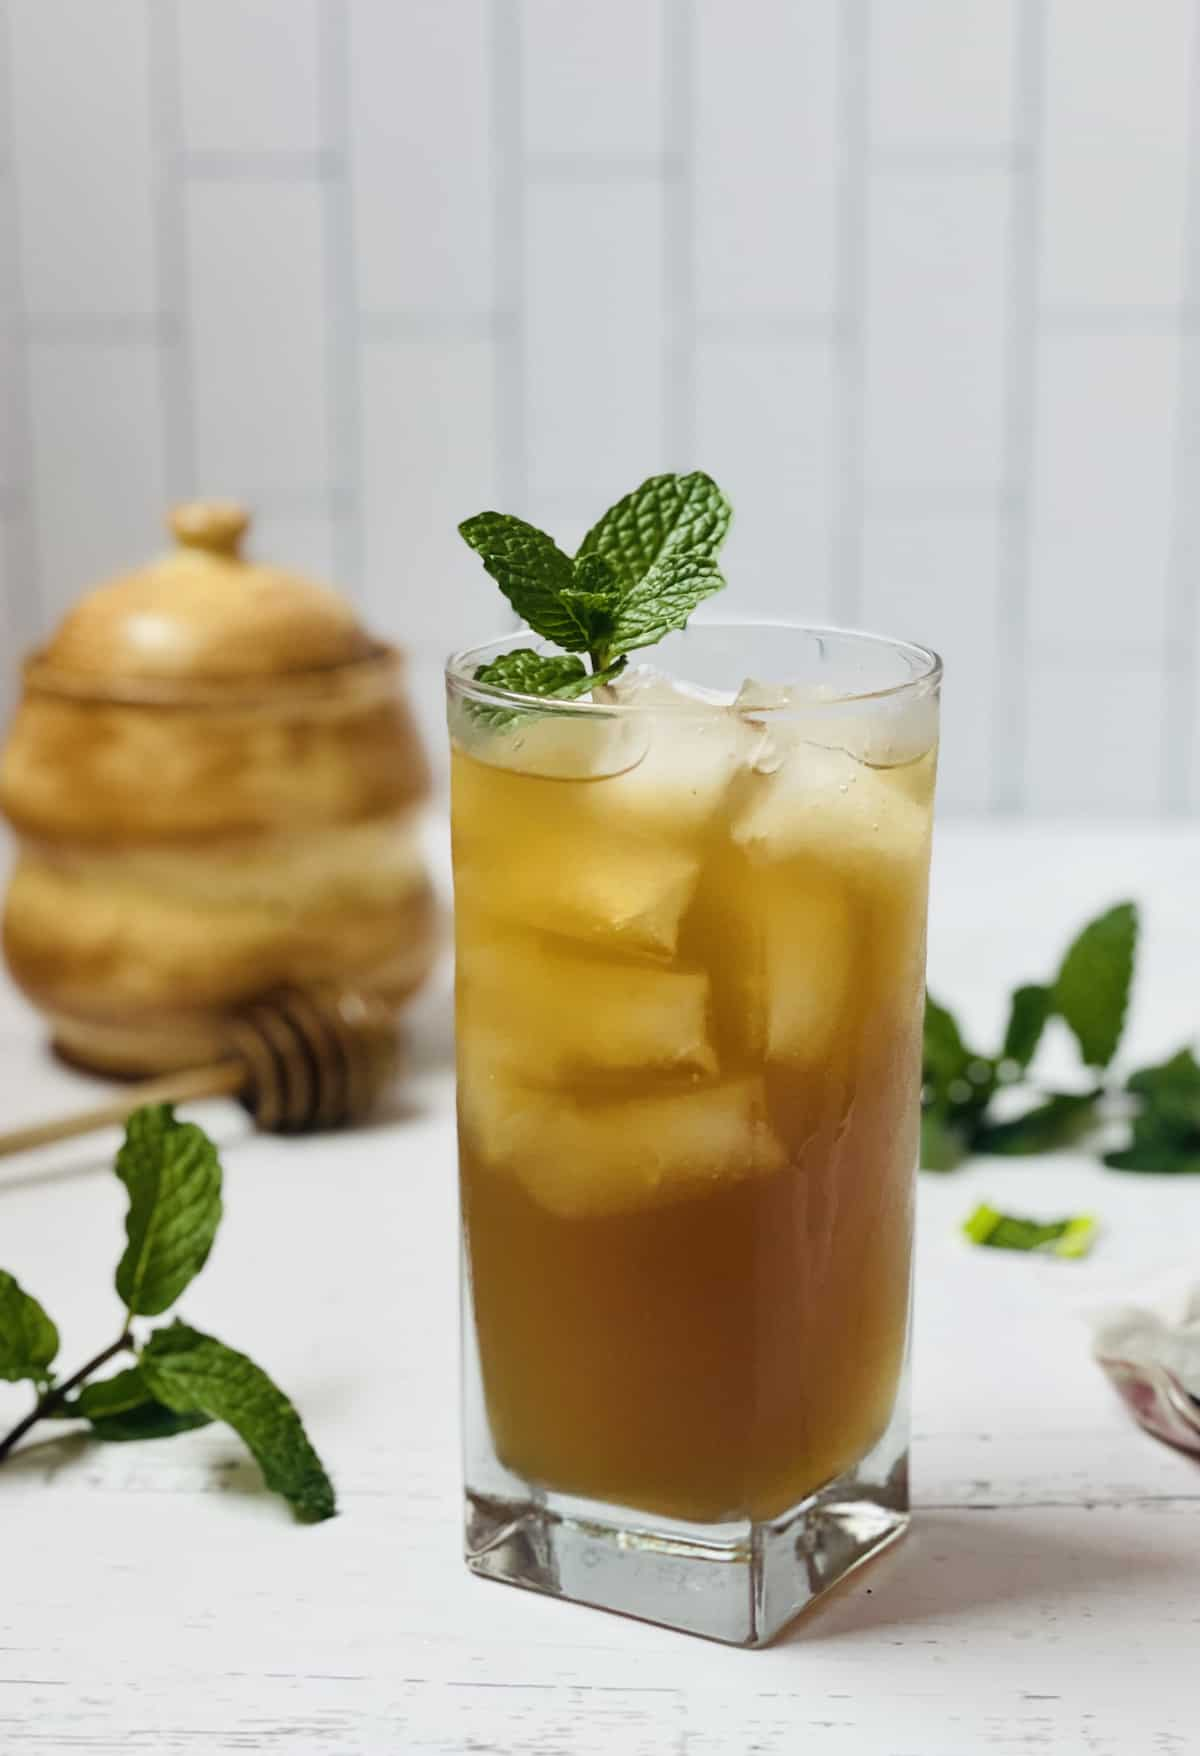 iced green tea in a cup with mint leaves and honey